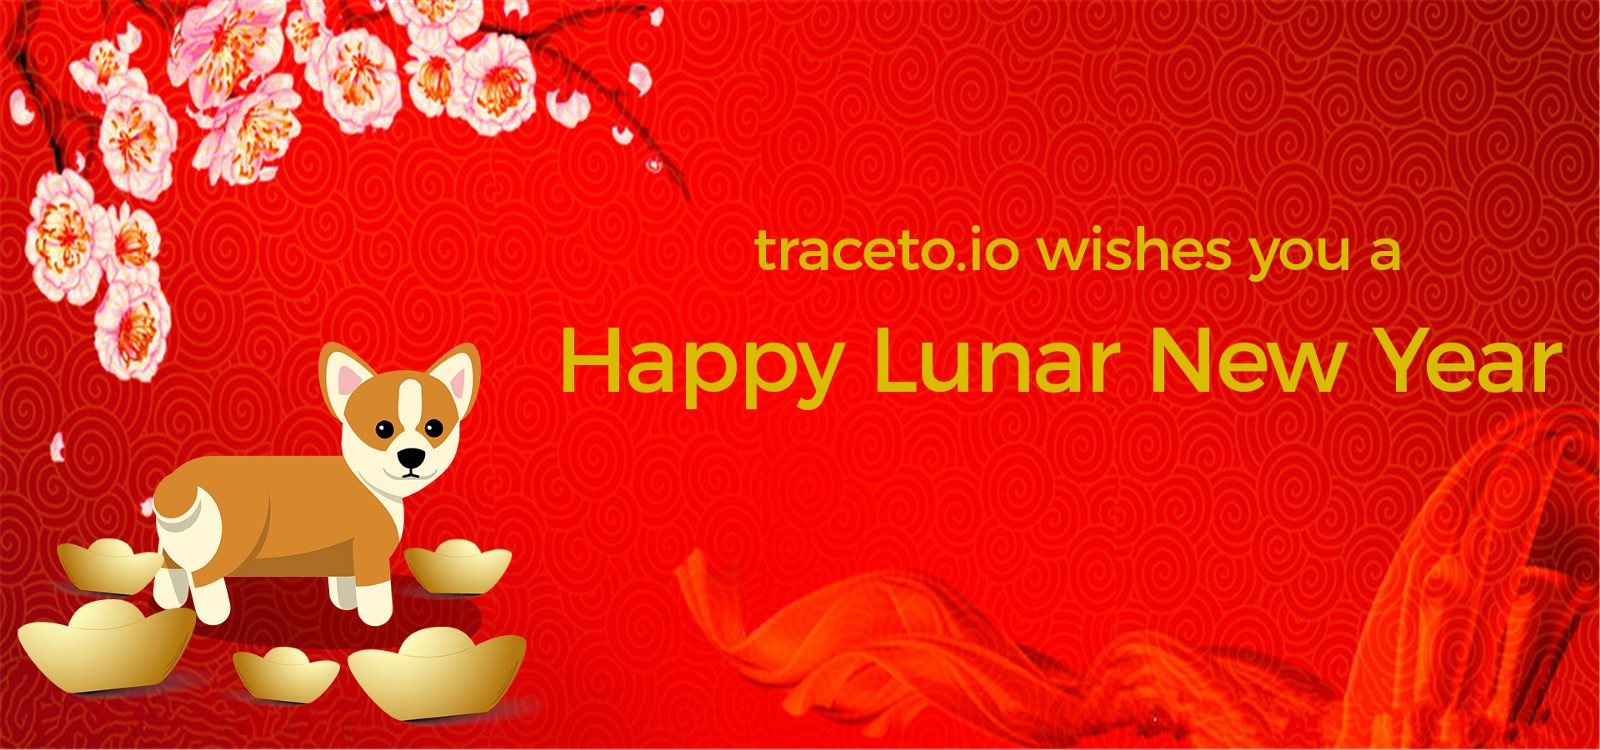 Happy Lunar New Year From Traceto Traceto Medium